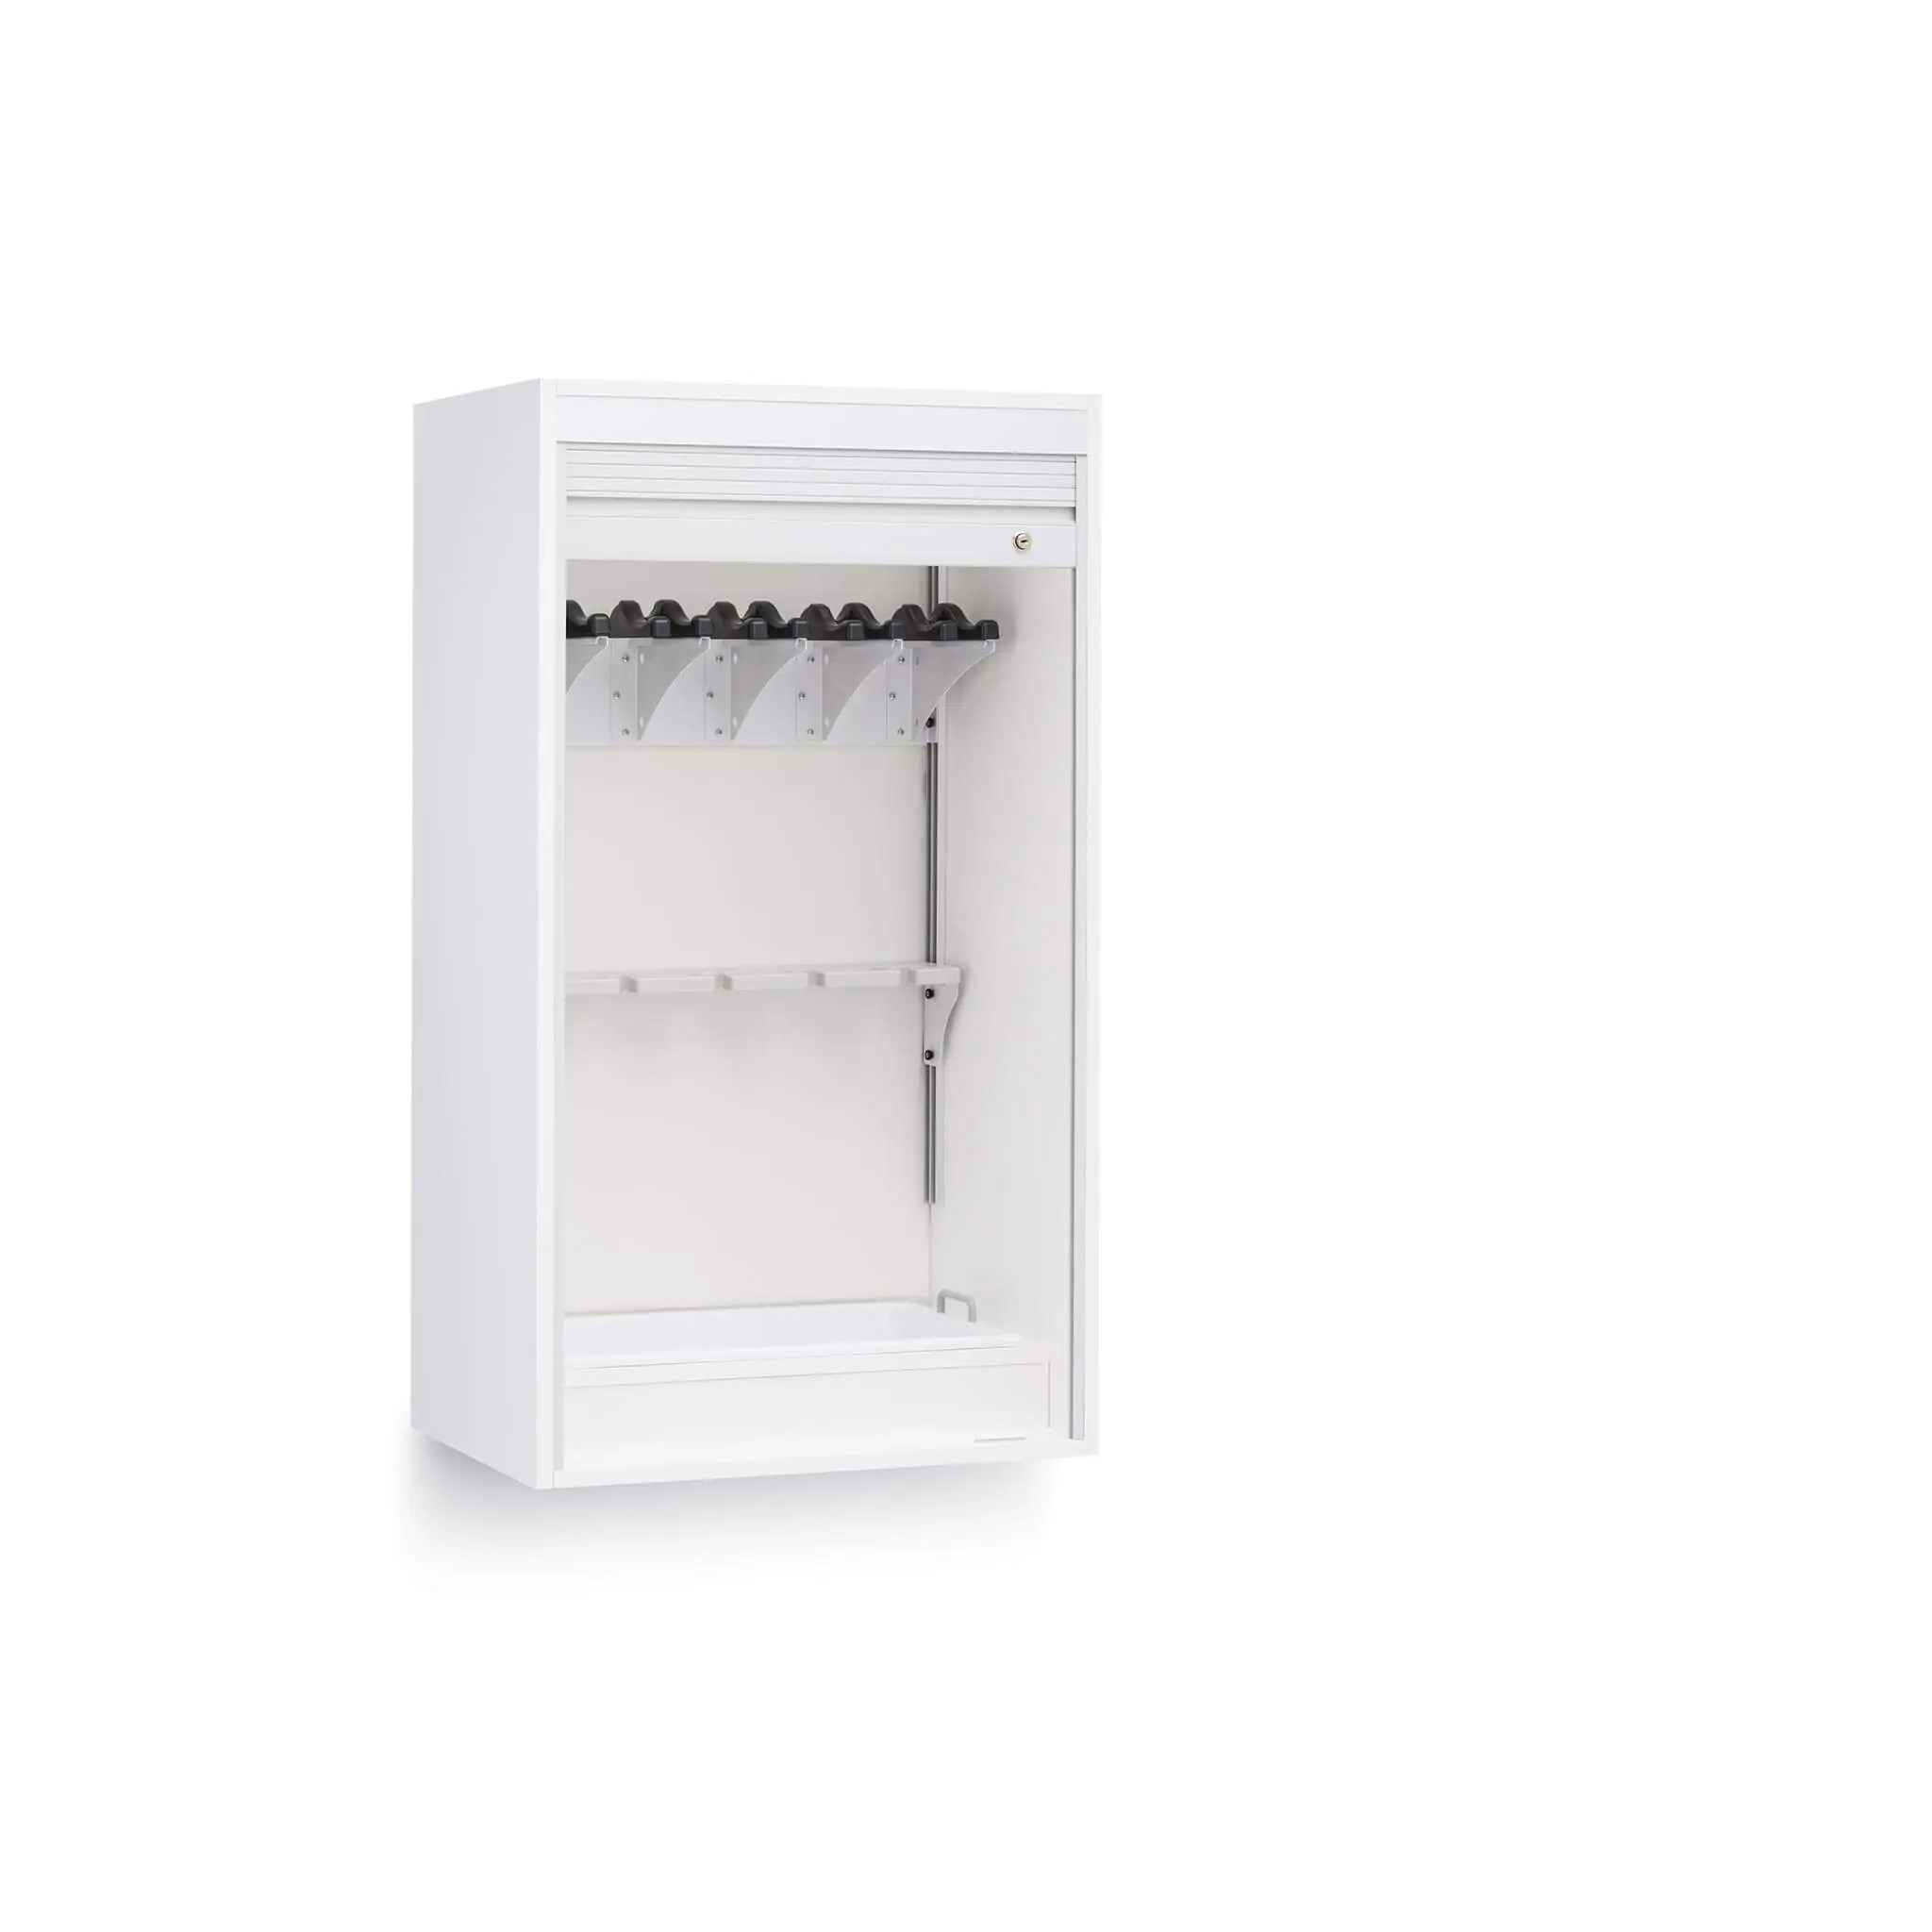 Wall Mounted Storage Cabinets Wall Mounted Scope Cabinet Endoscope Storage